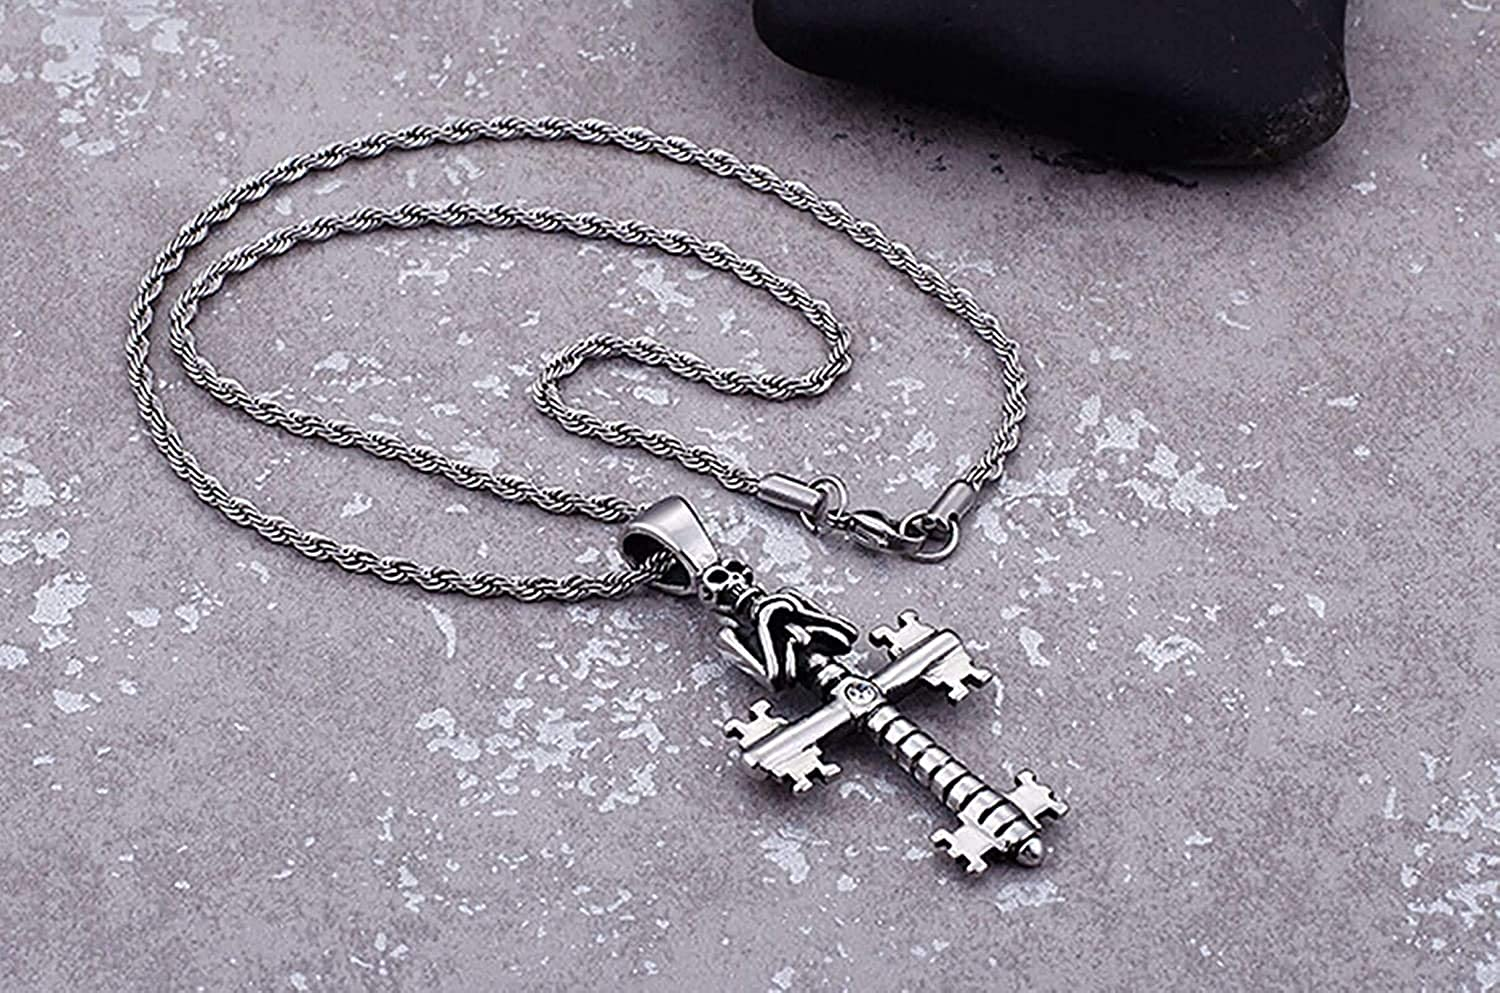 LOPEZ KENT Pendant Necklace for Men Stainless Steel Skull Gothic Cross Necklace Silver Necklace Vintage